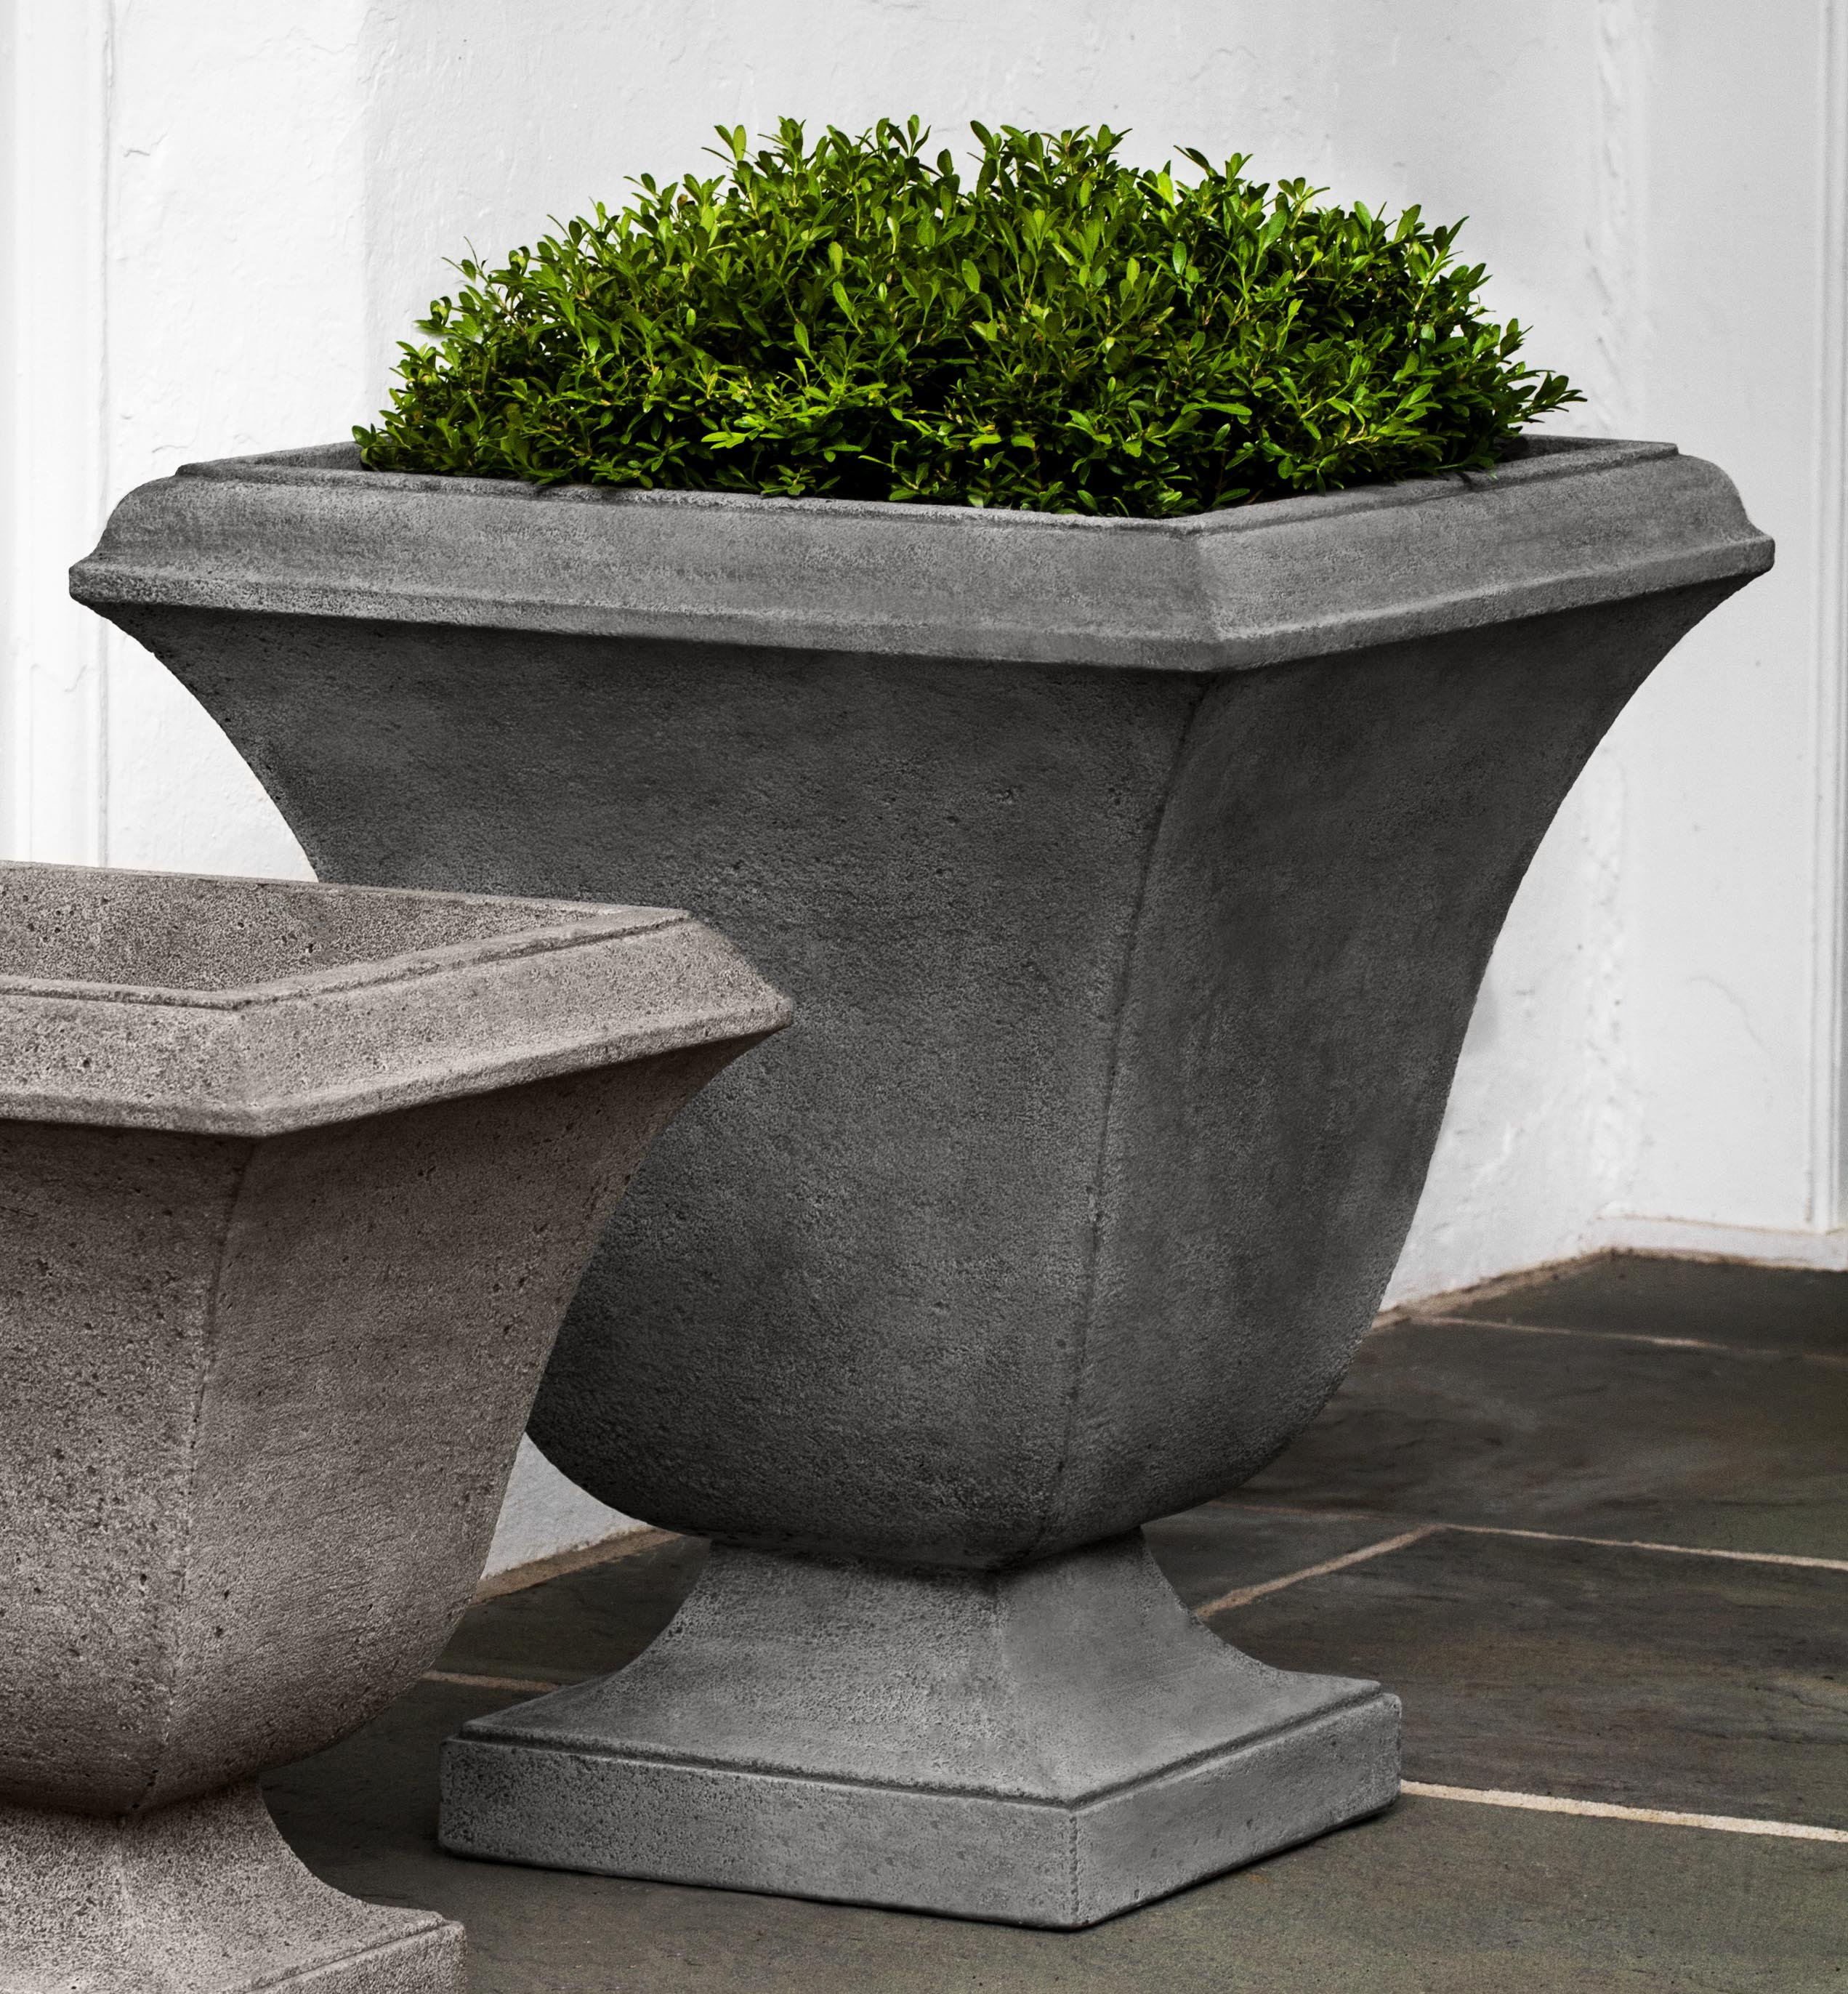 cfm hayneedle pedestal master product international greenwich with urn planter campania